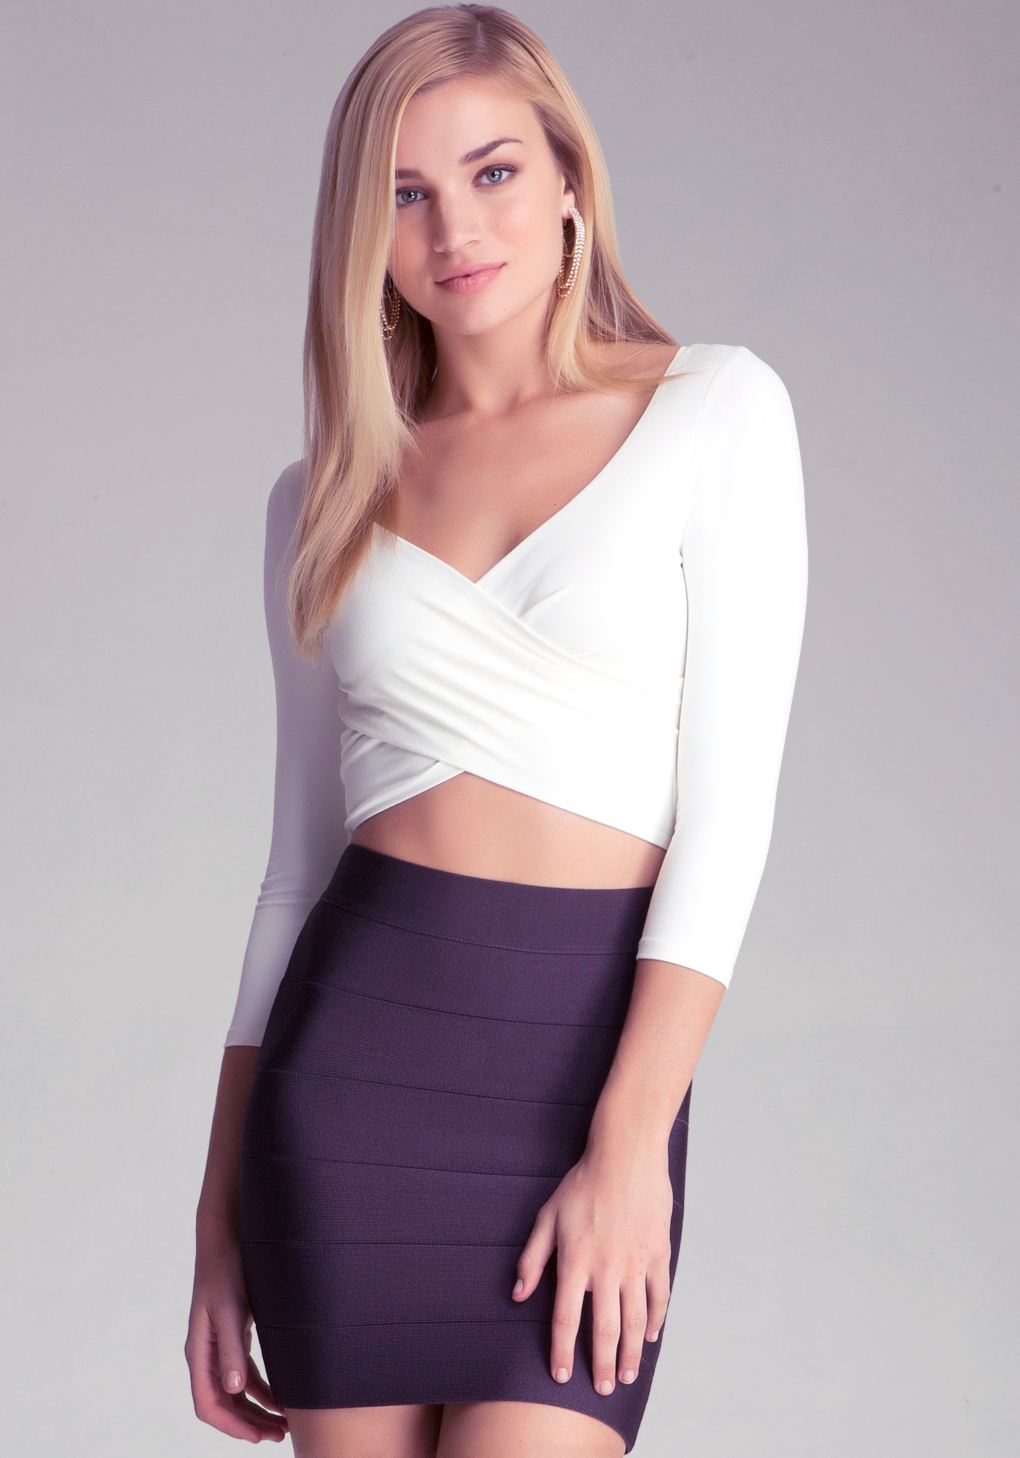 79fe5ccf2e2 Bebe 3/4 Sleeve Wrap Crop Top in White - Lyst